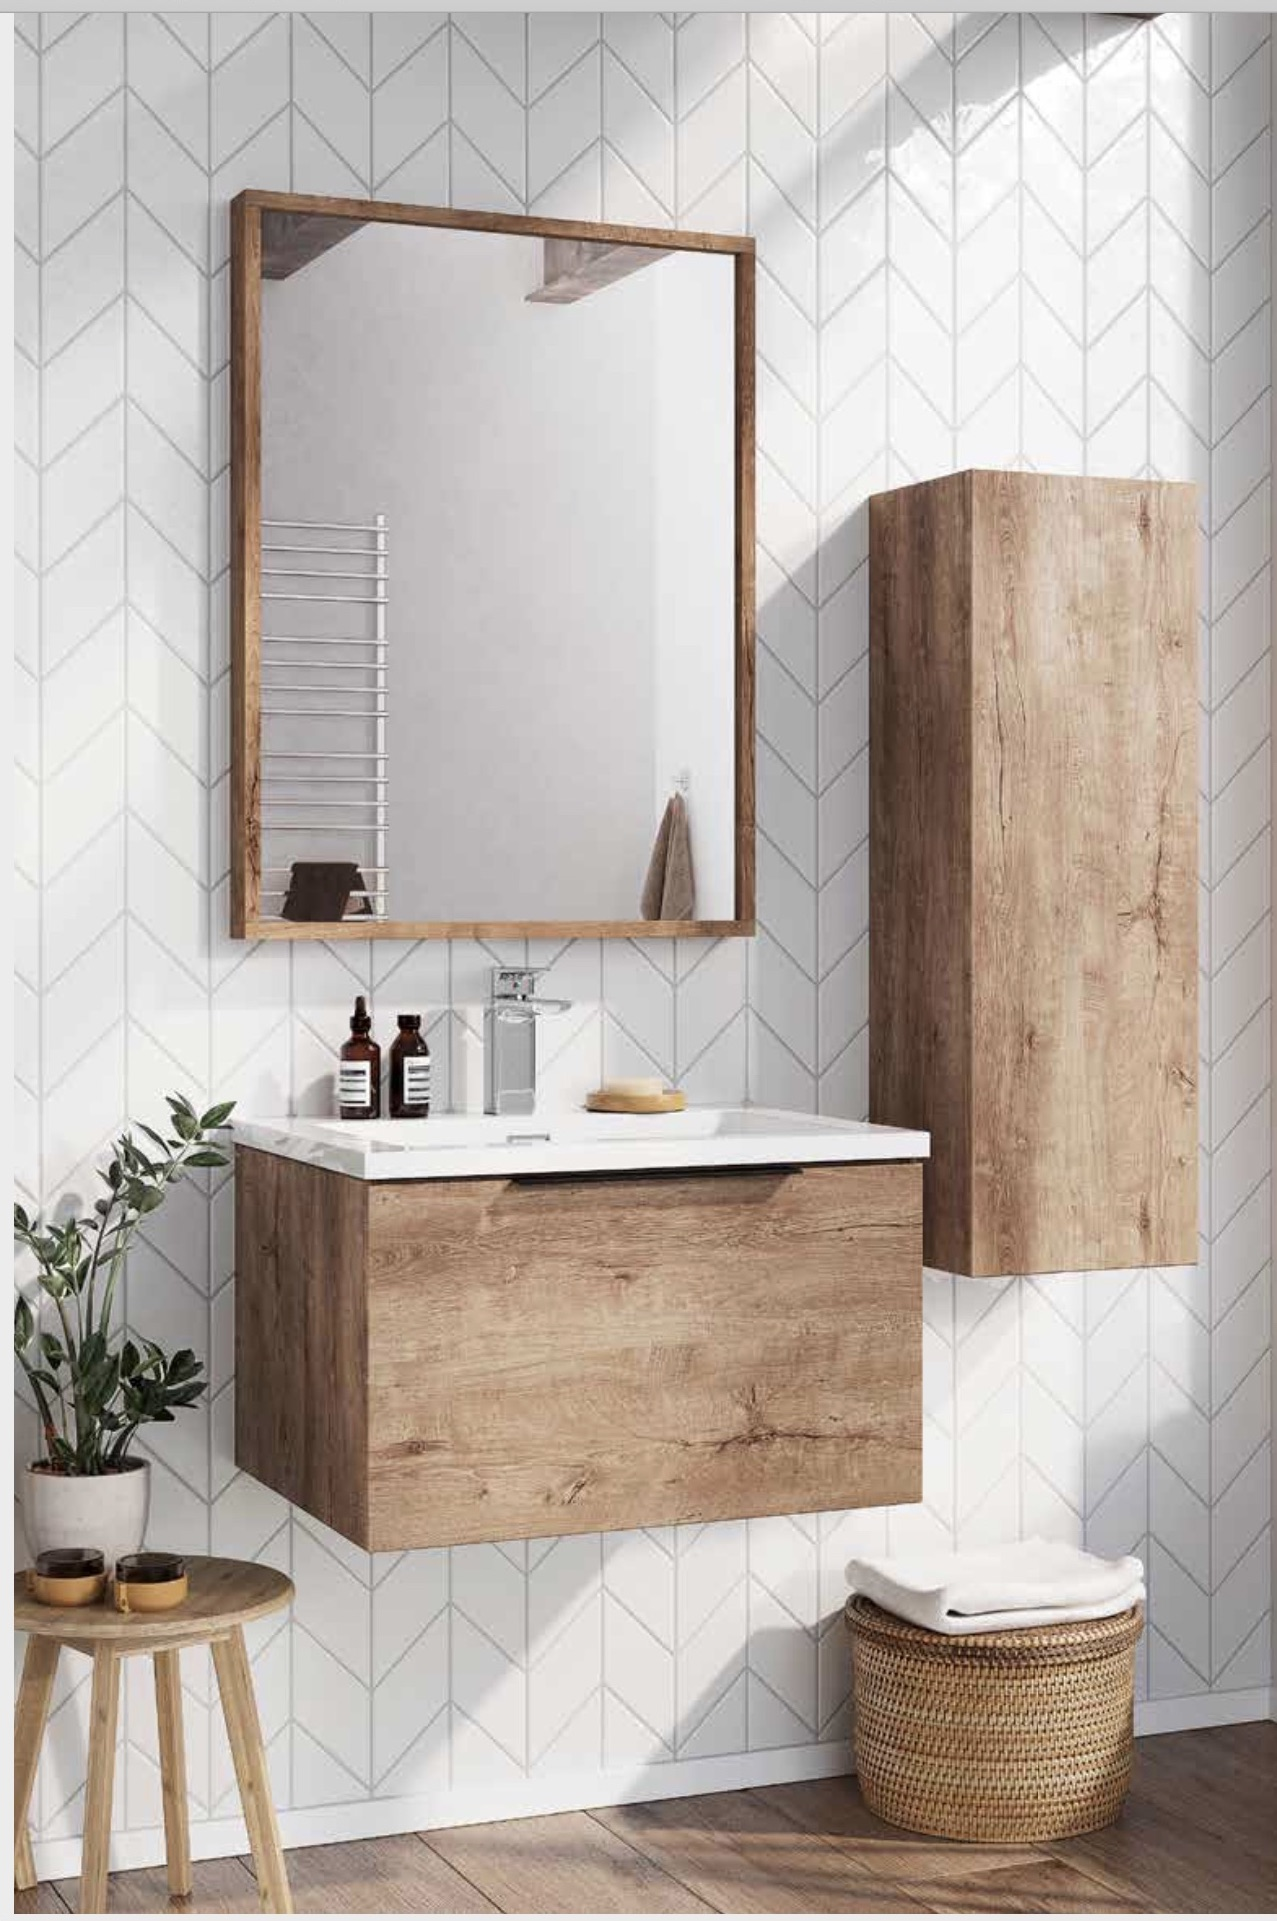 Wall-hung Bathroom Furniture